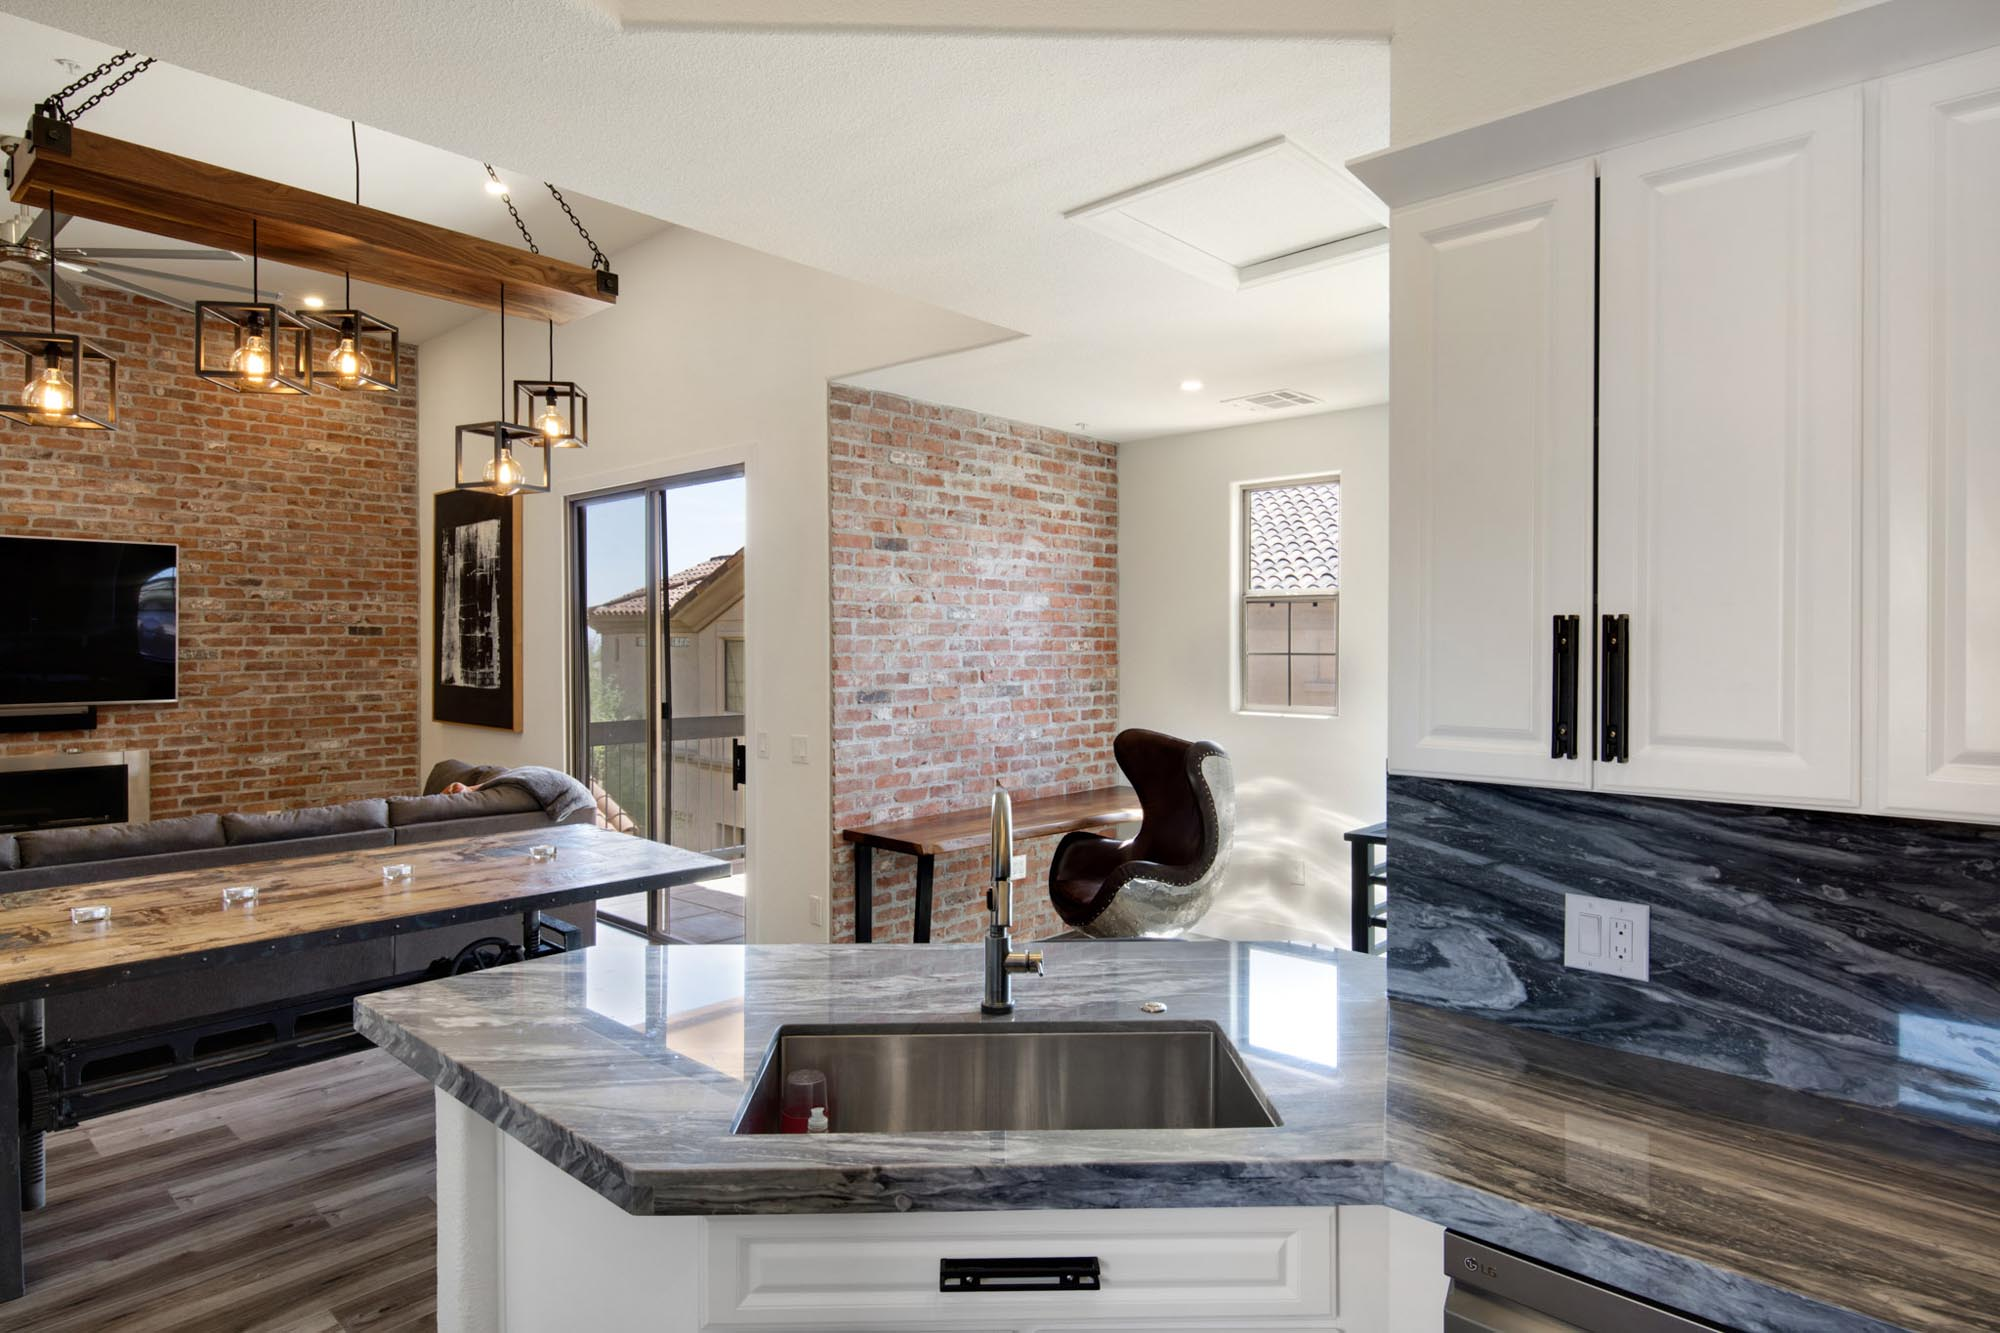 Living room with stylish hanging lights and granite countertop sink